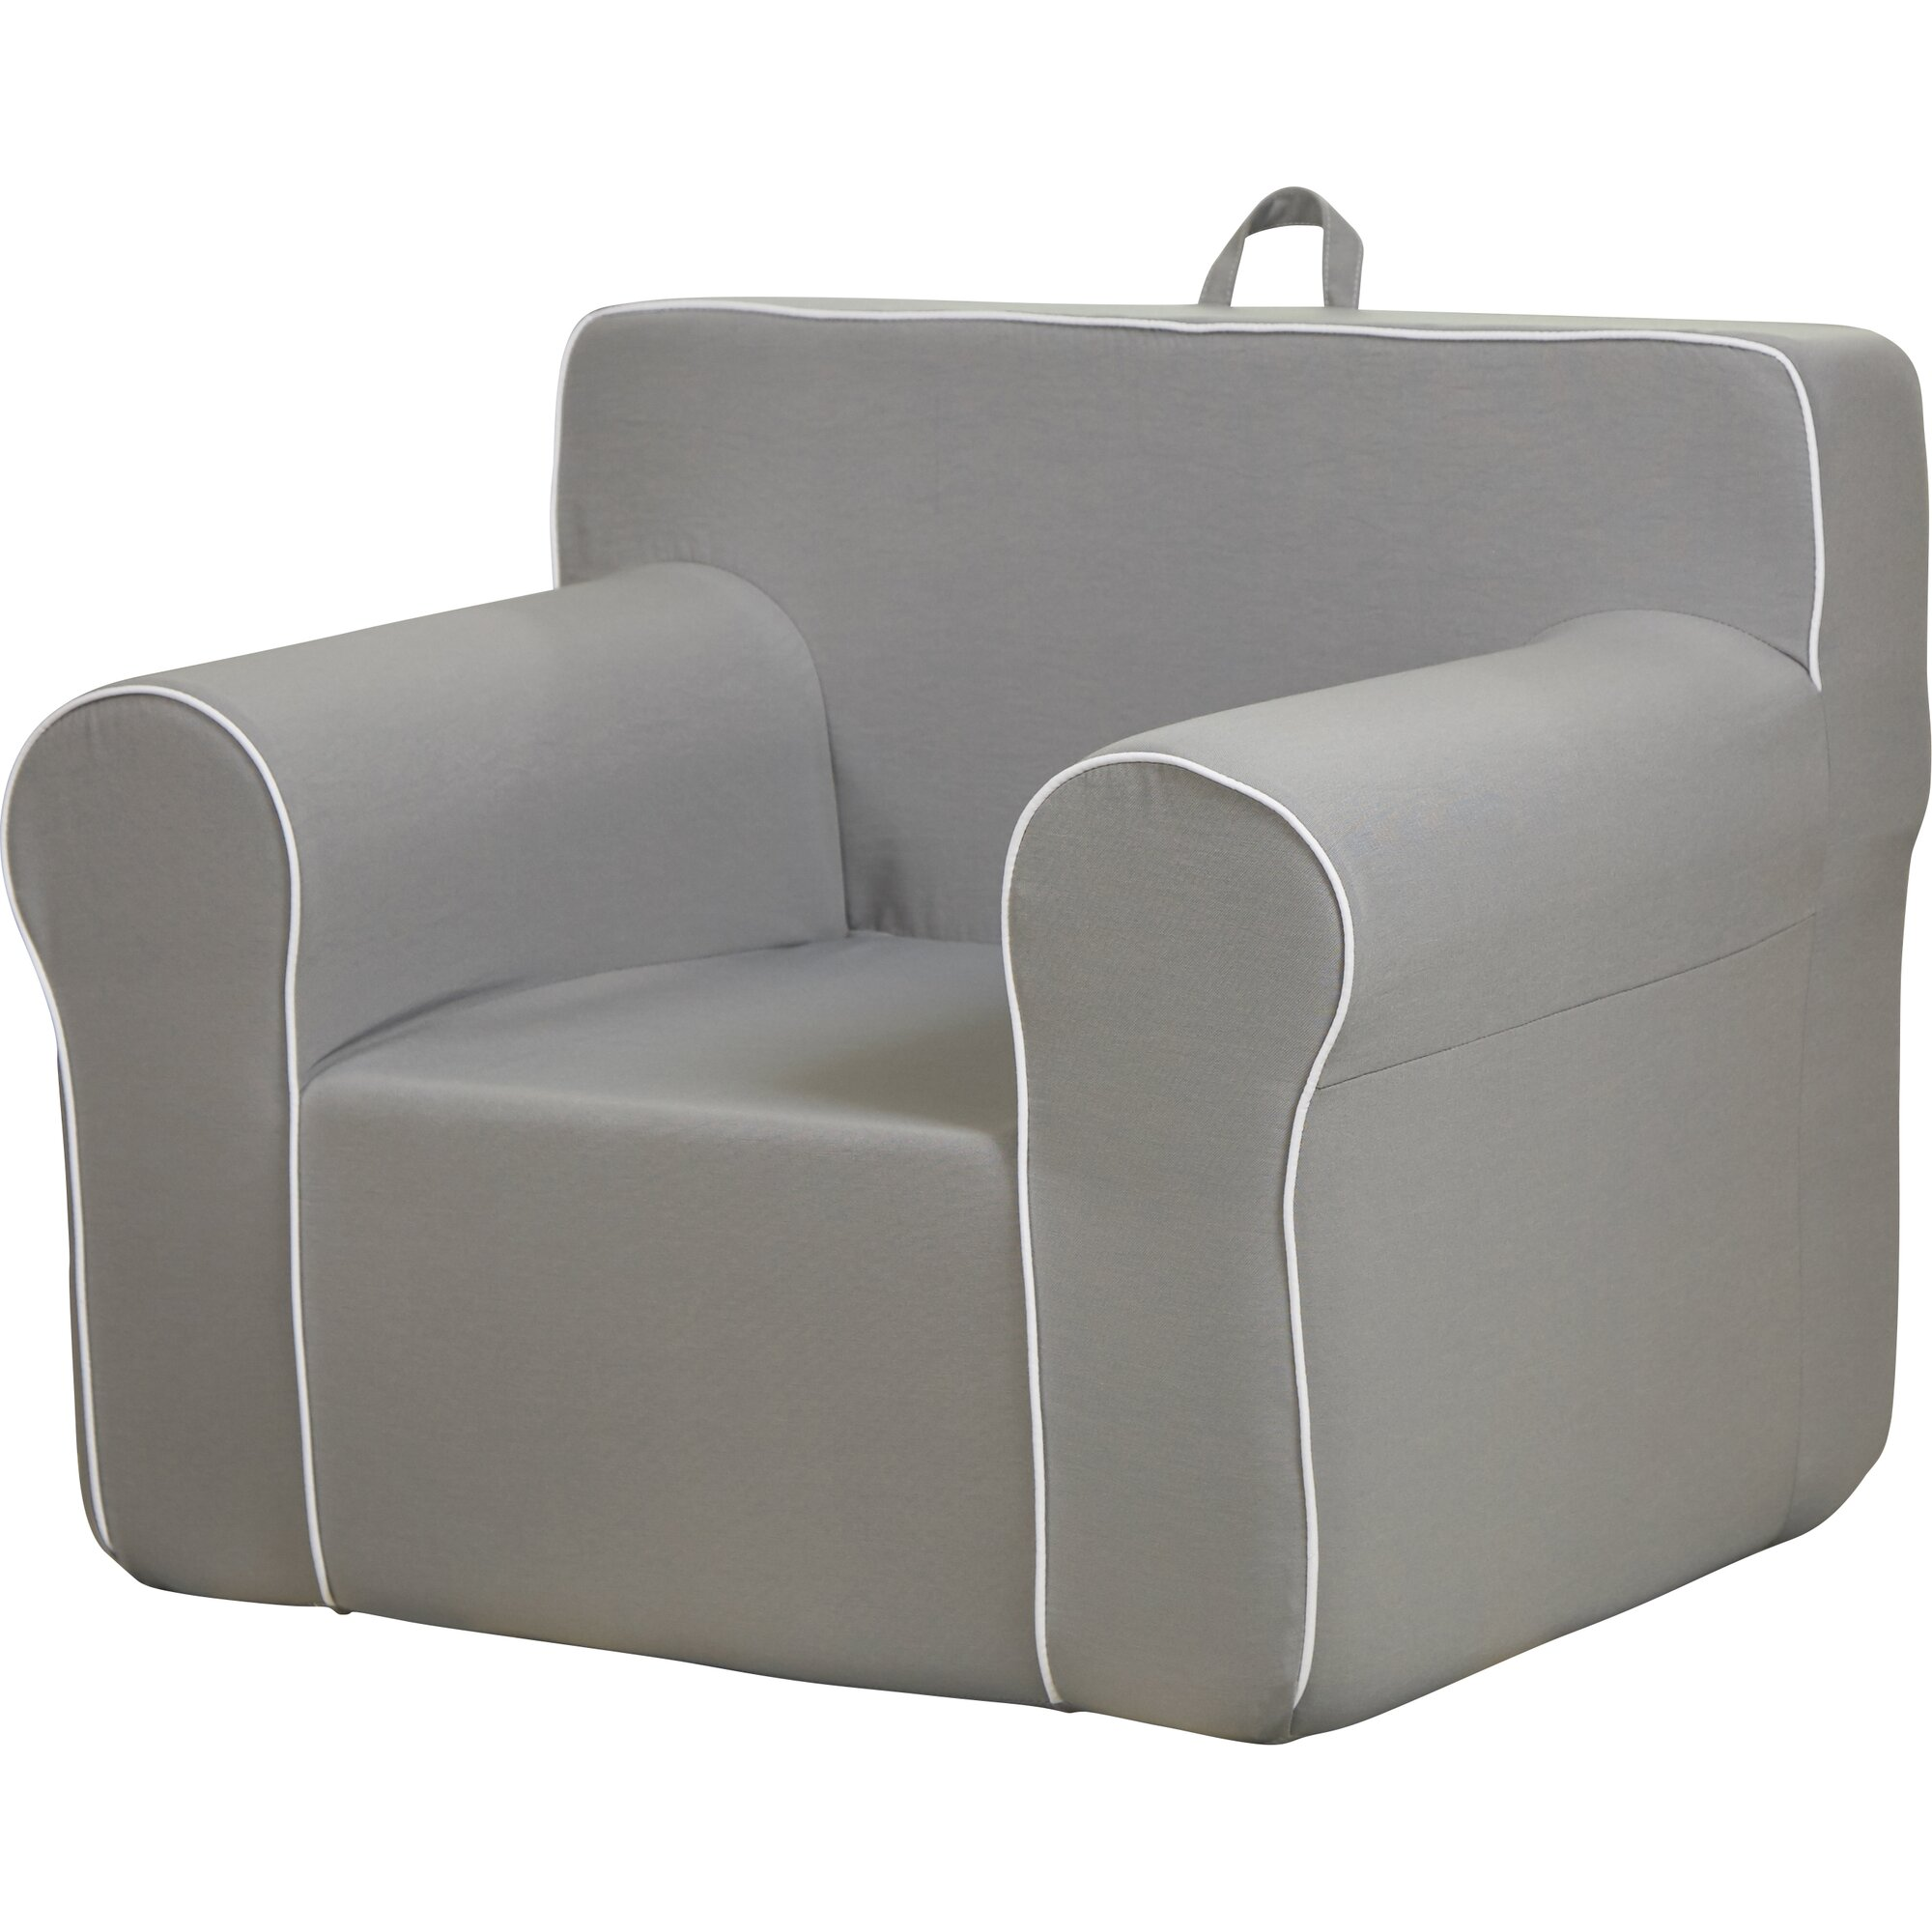 Fun furnishings my comfy chair in light gray reviews for Grey comfy chair